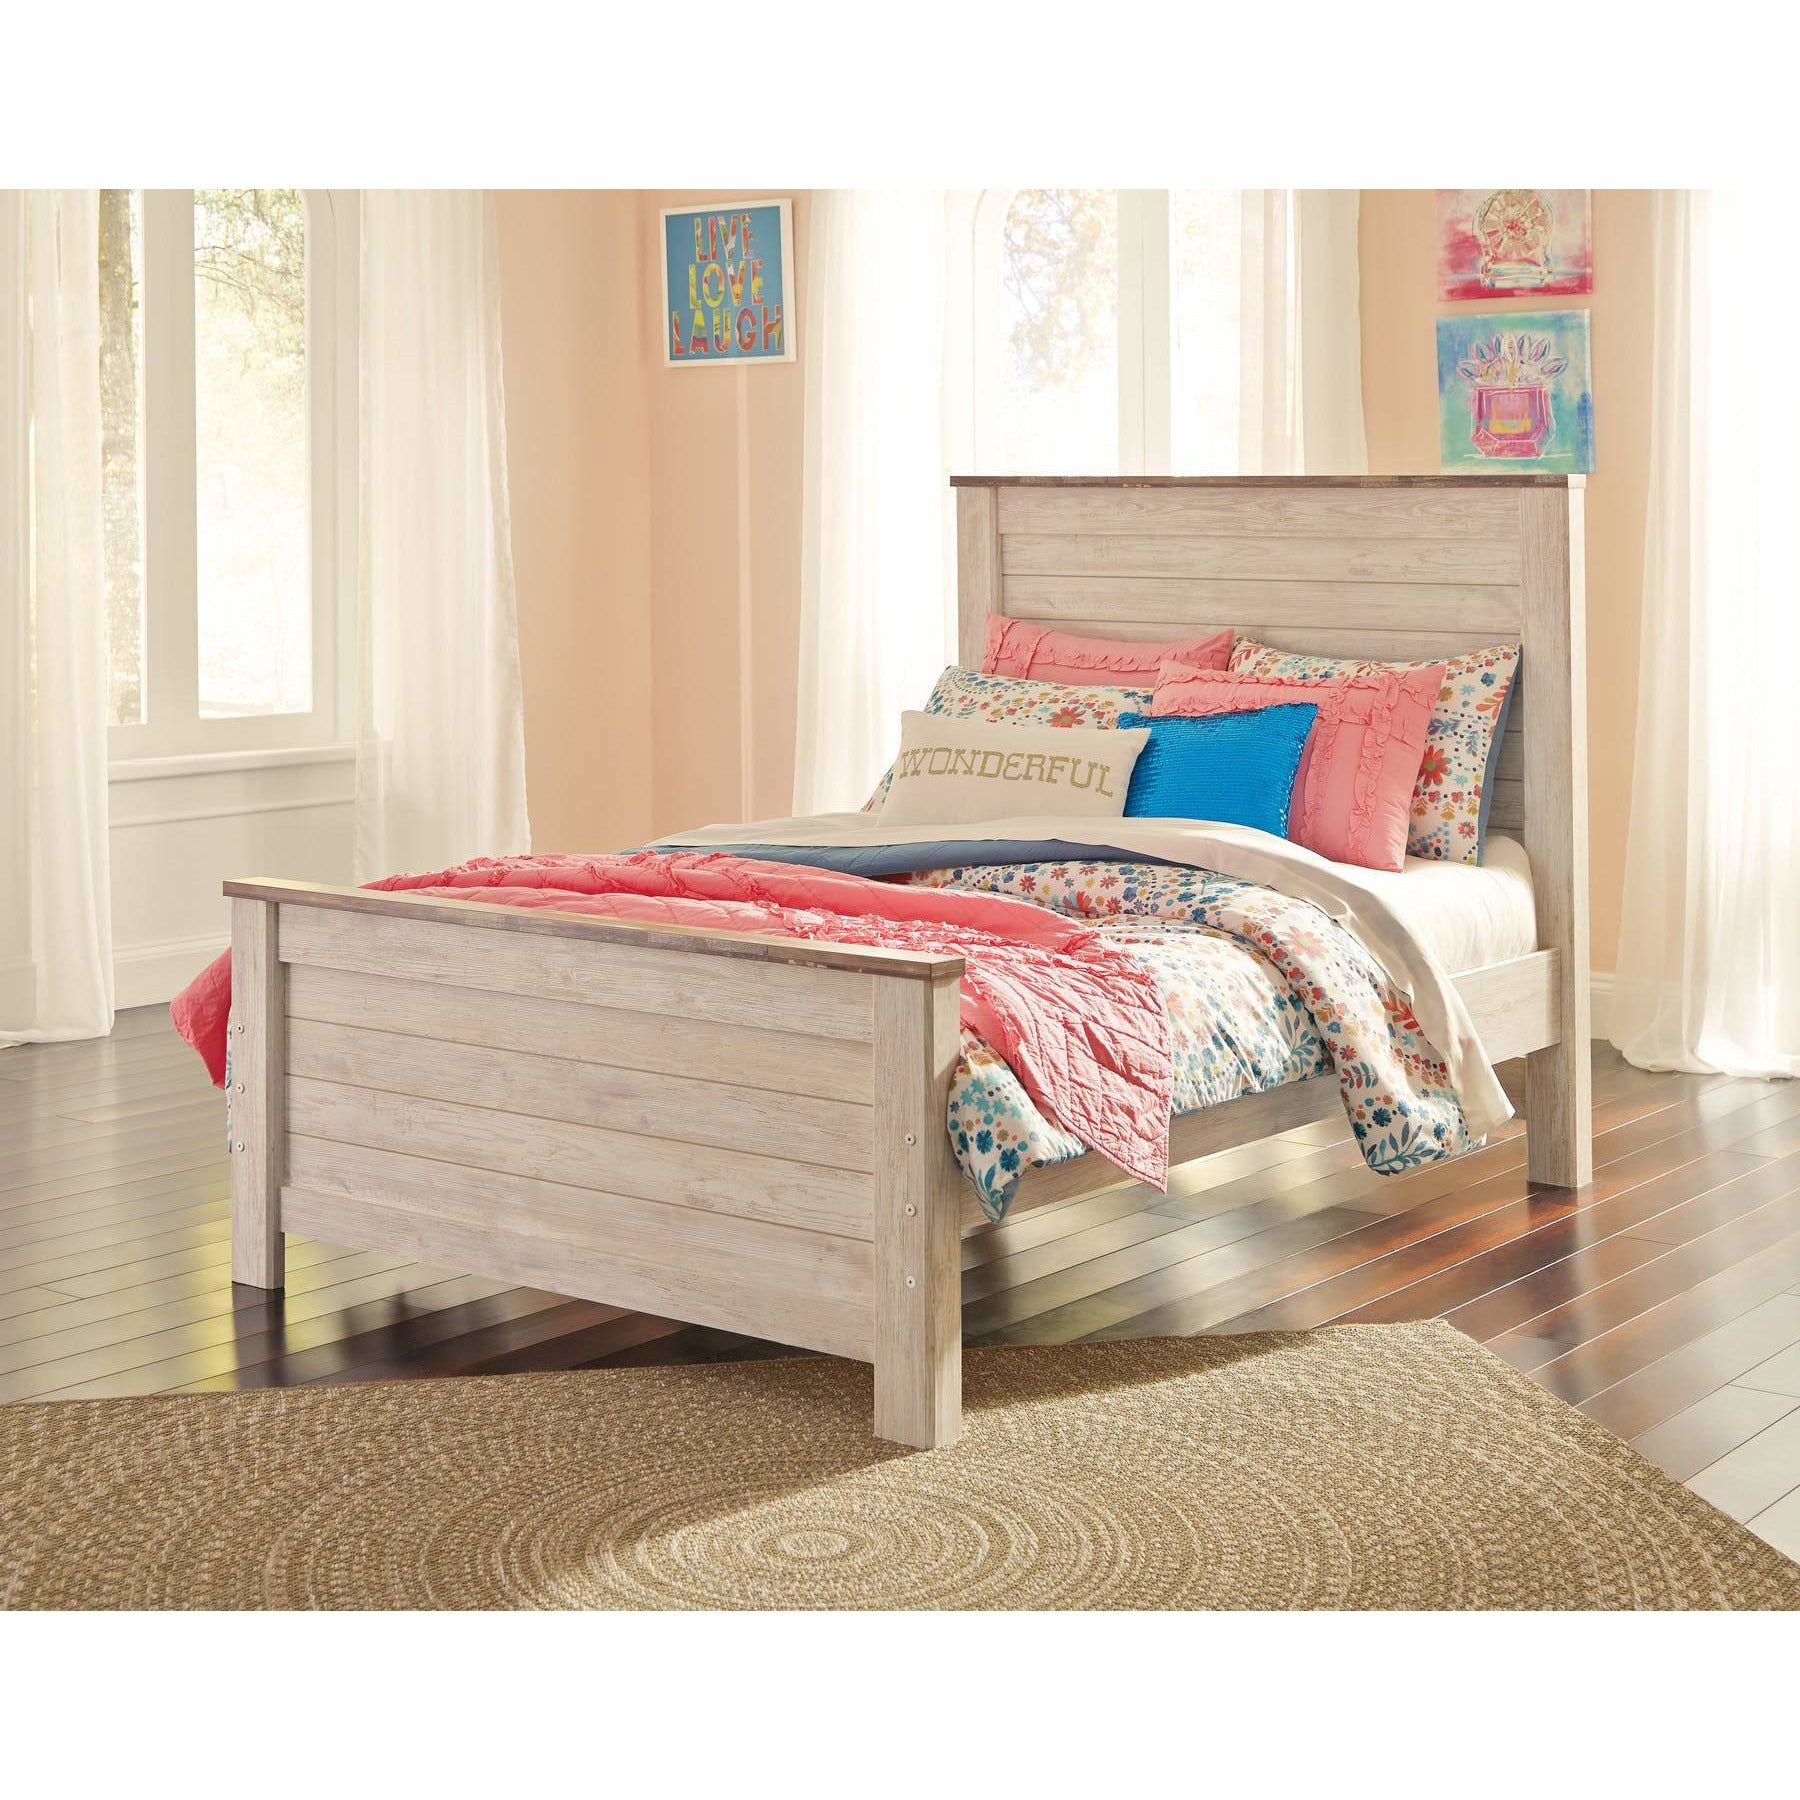 Willowton Bed